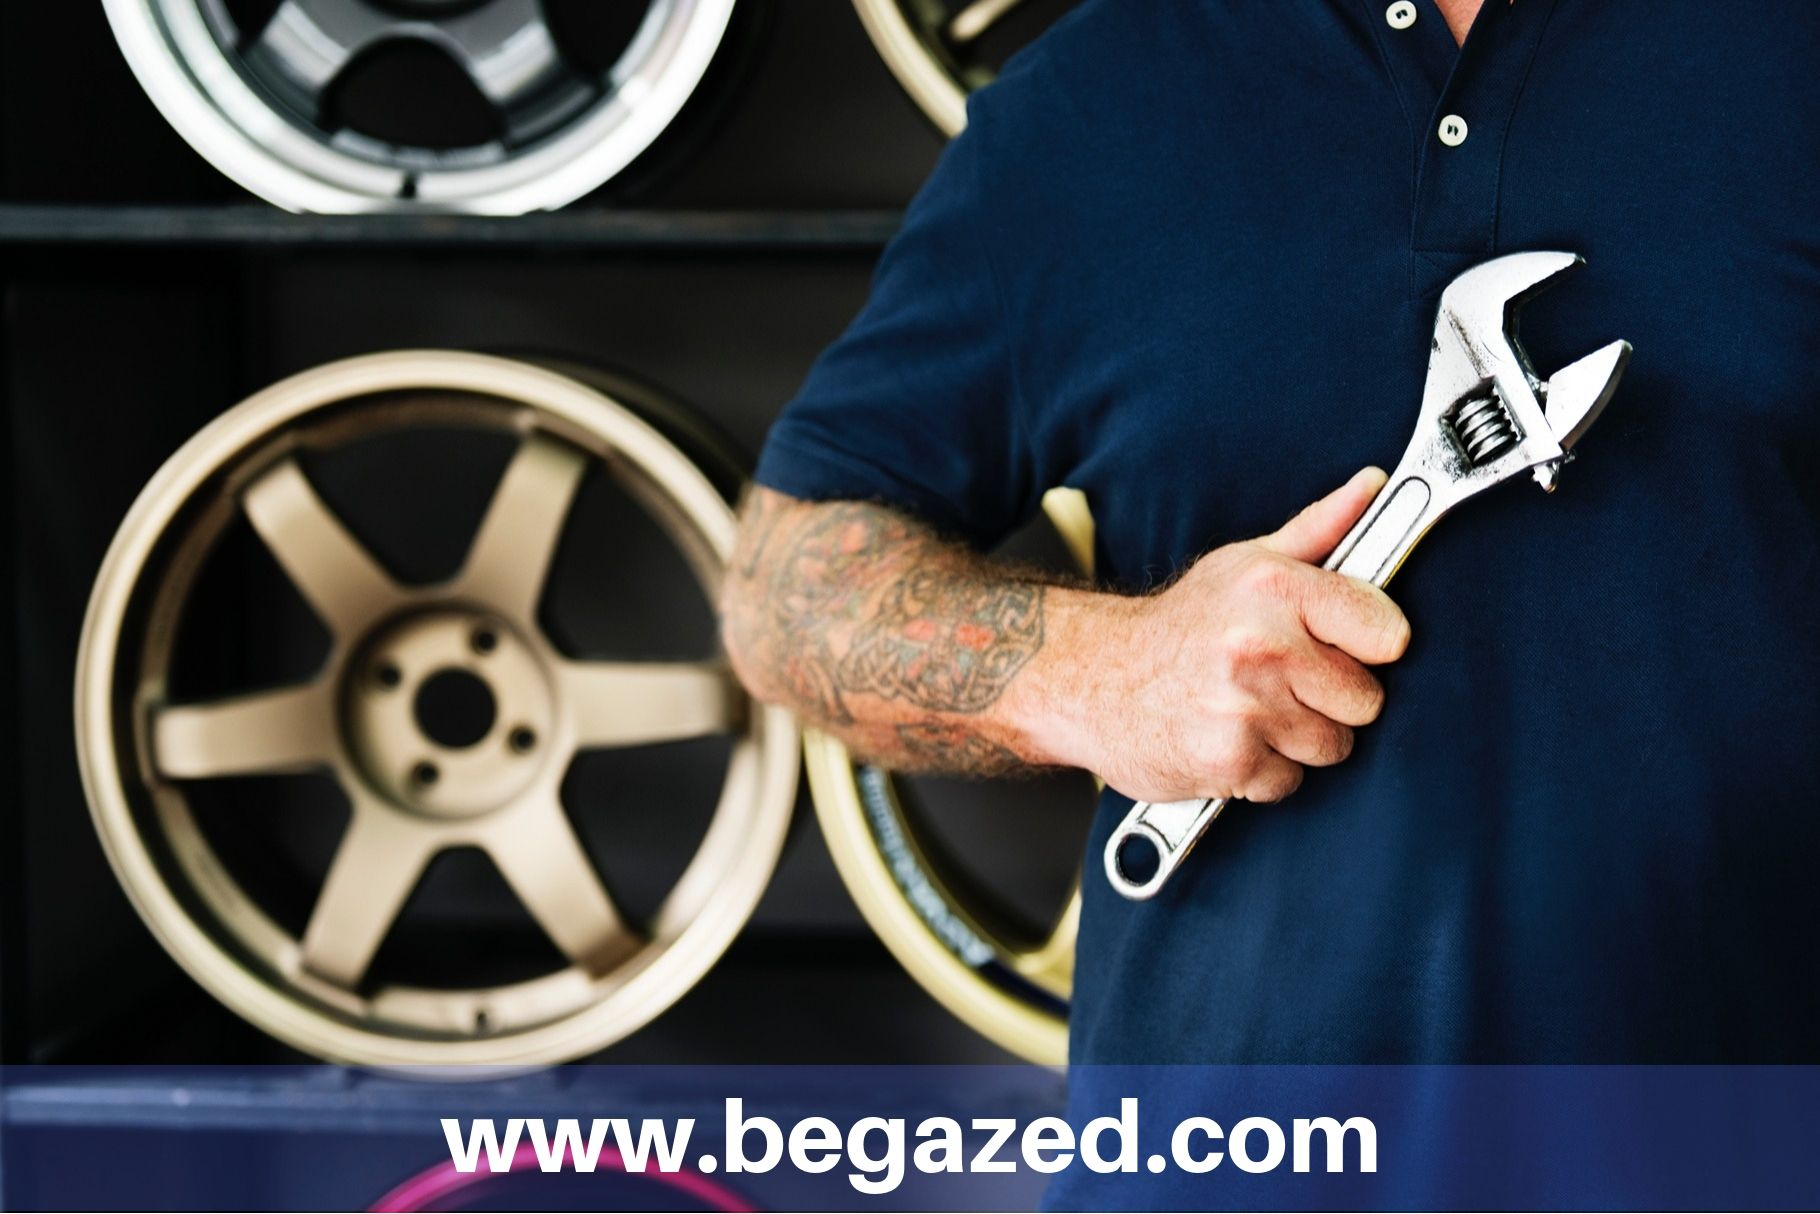 Begazed (With images) Auto body repair shops, Auto body